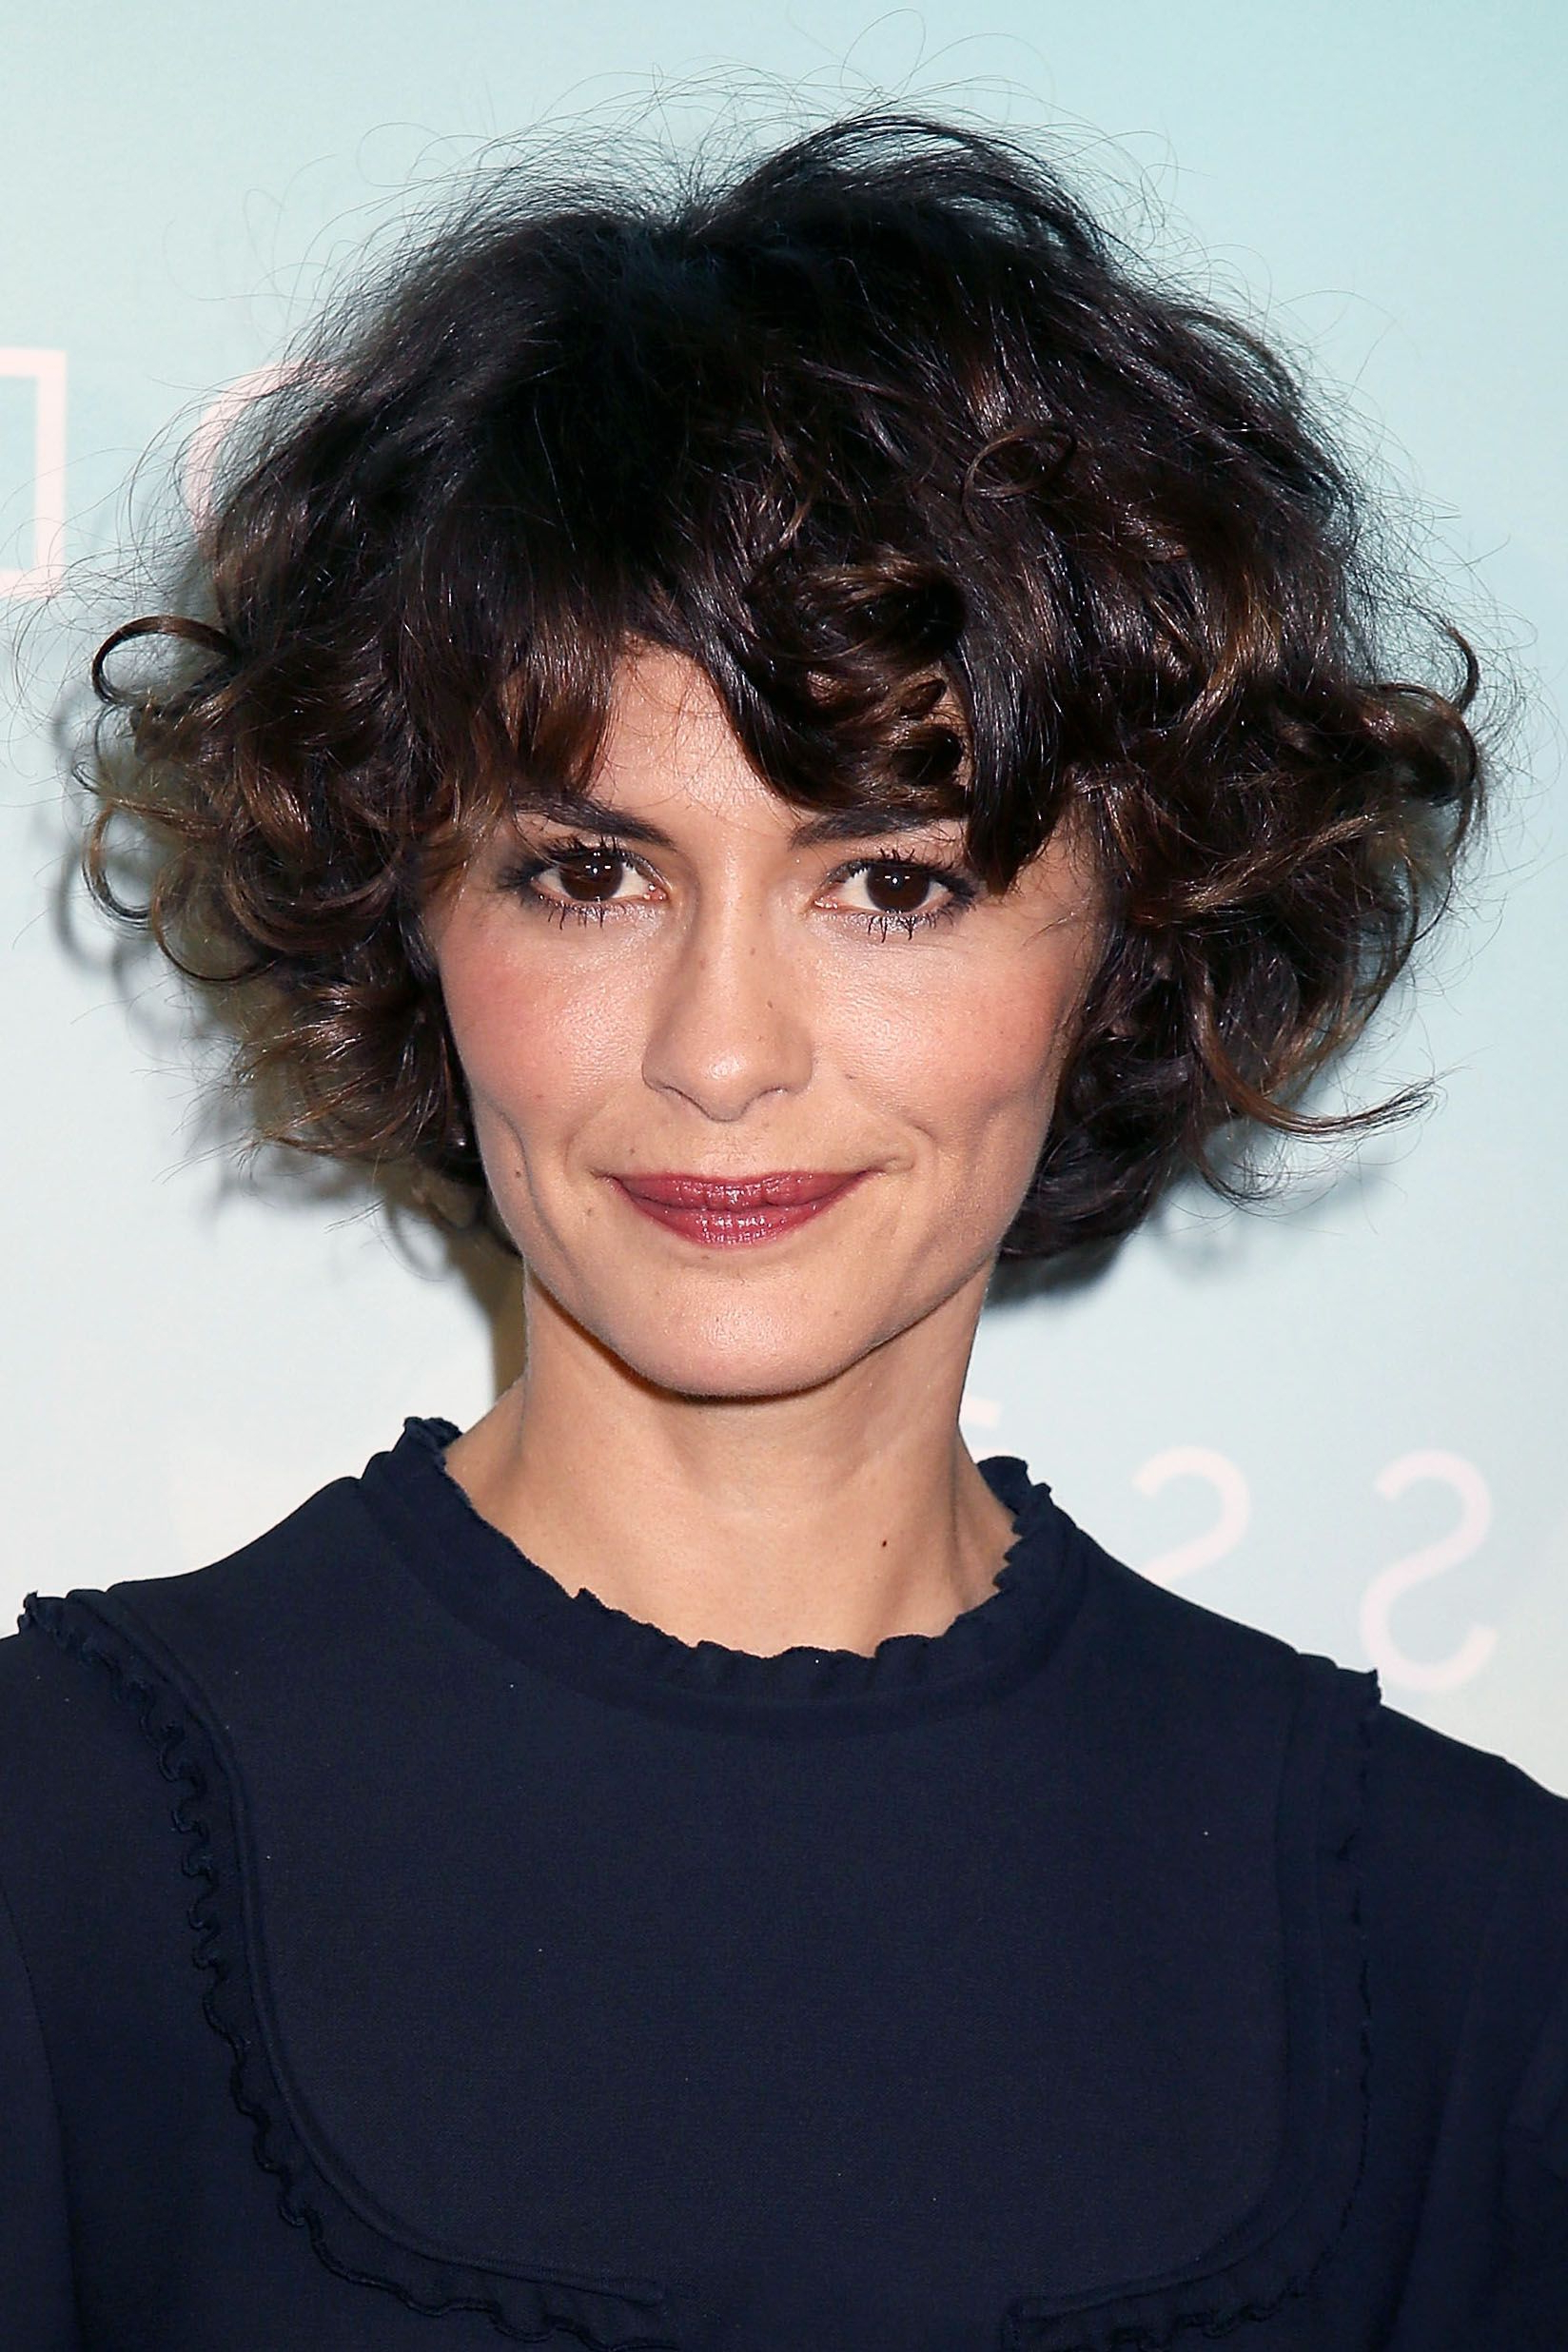 20 Best Short Curly Hairstyles 2019 – Cute Short Haircuts Throughout Pixie Haircuts With Bangs And Loose Curls (View 1 of 20)